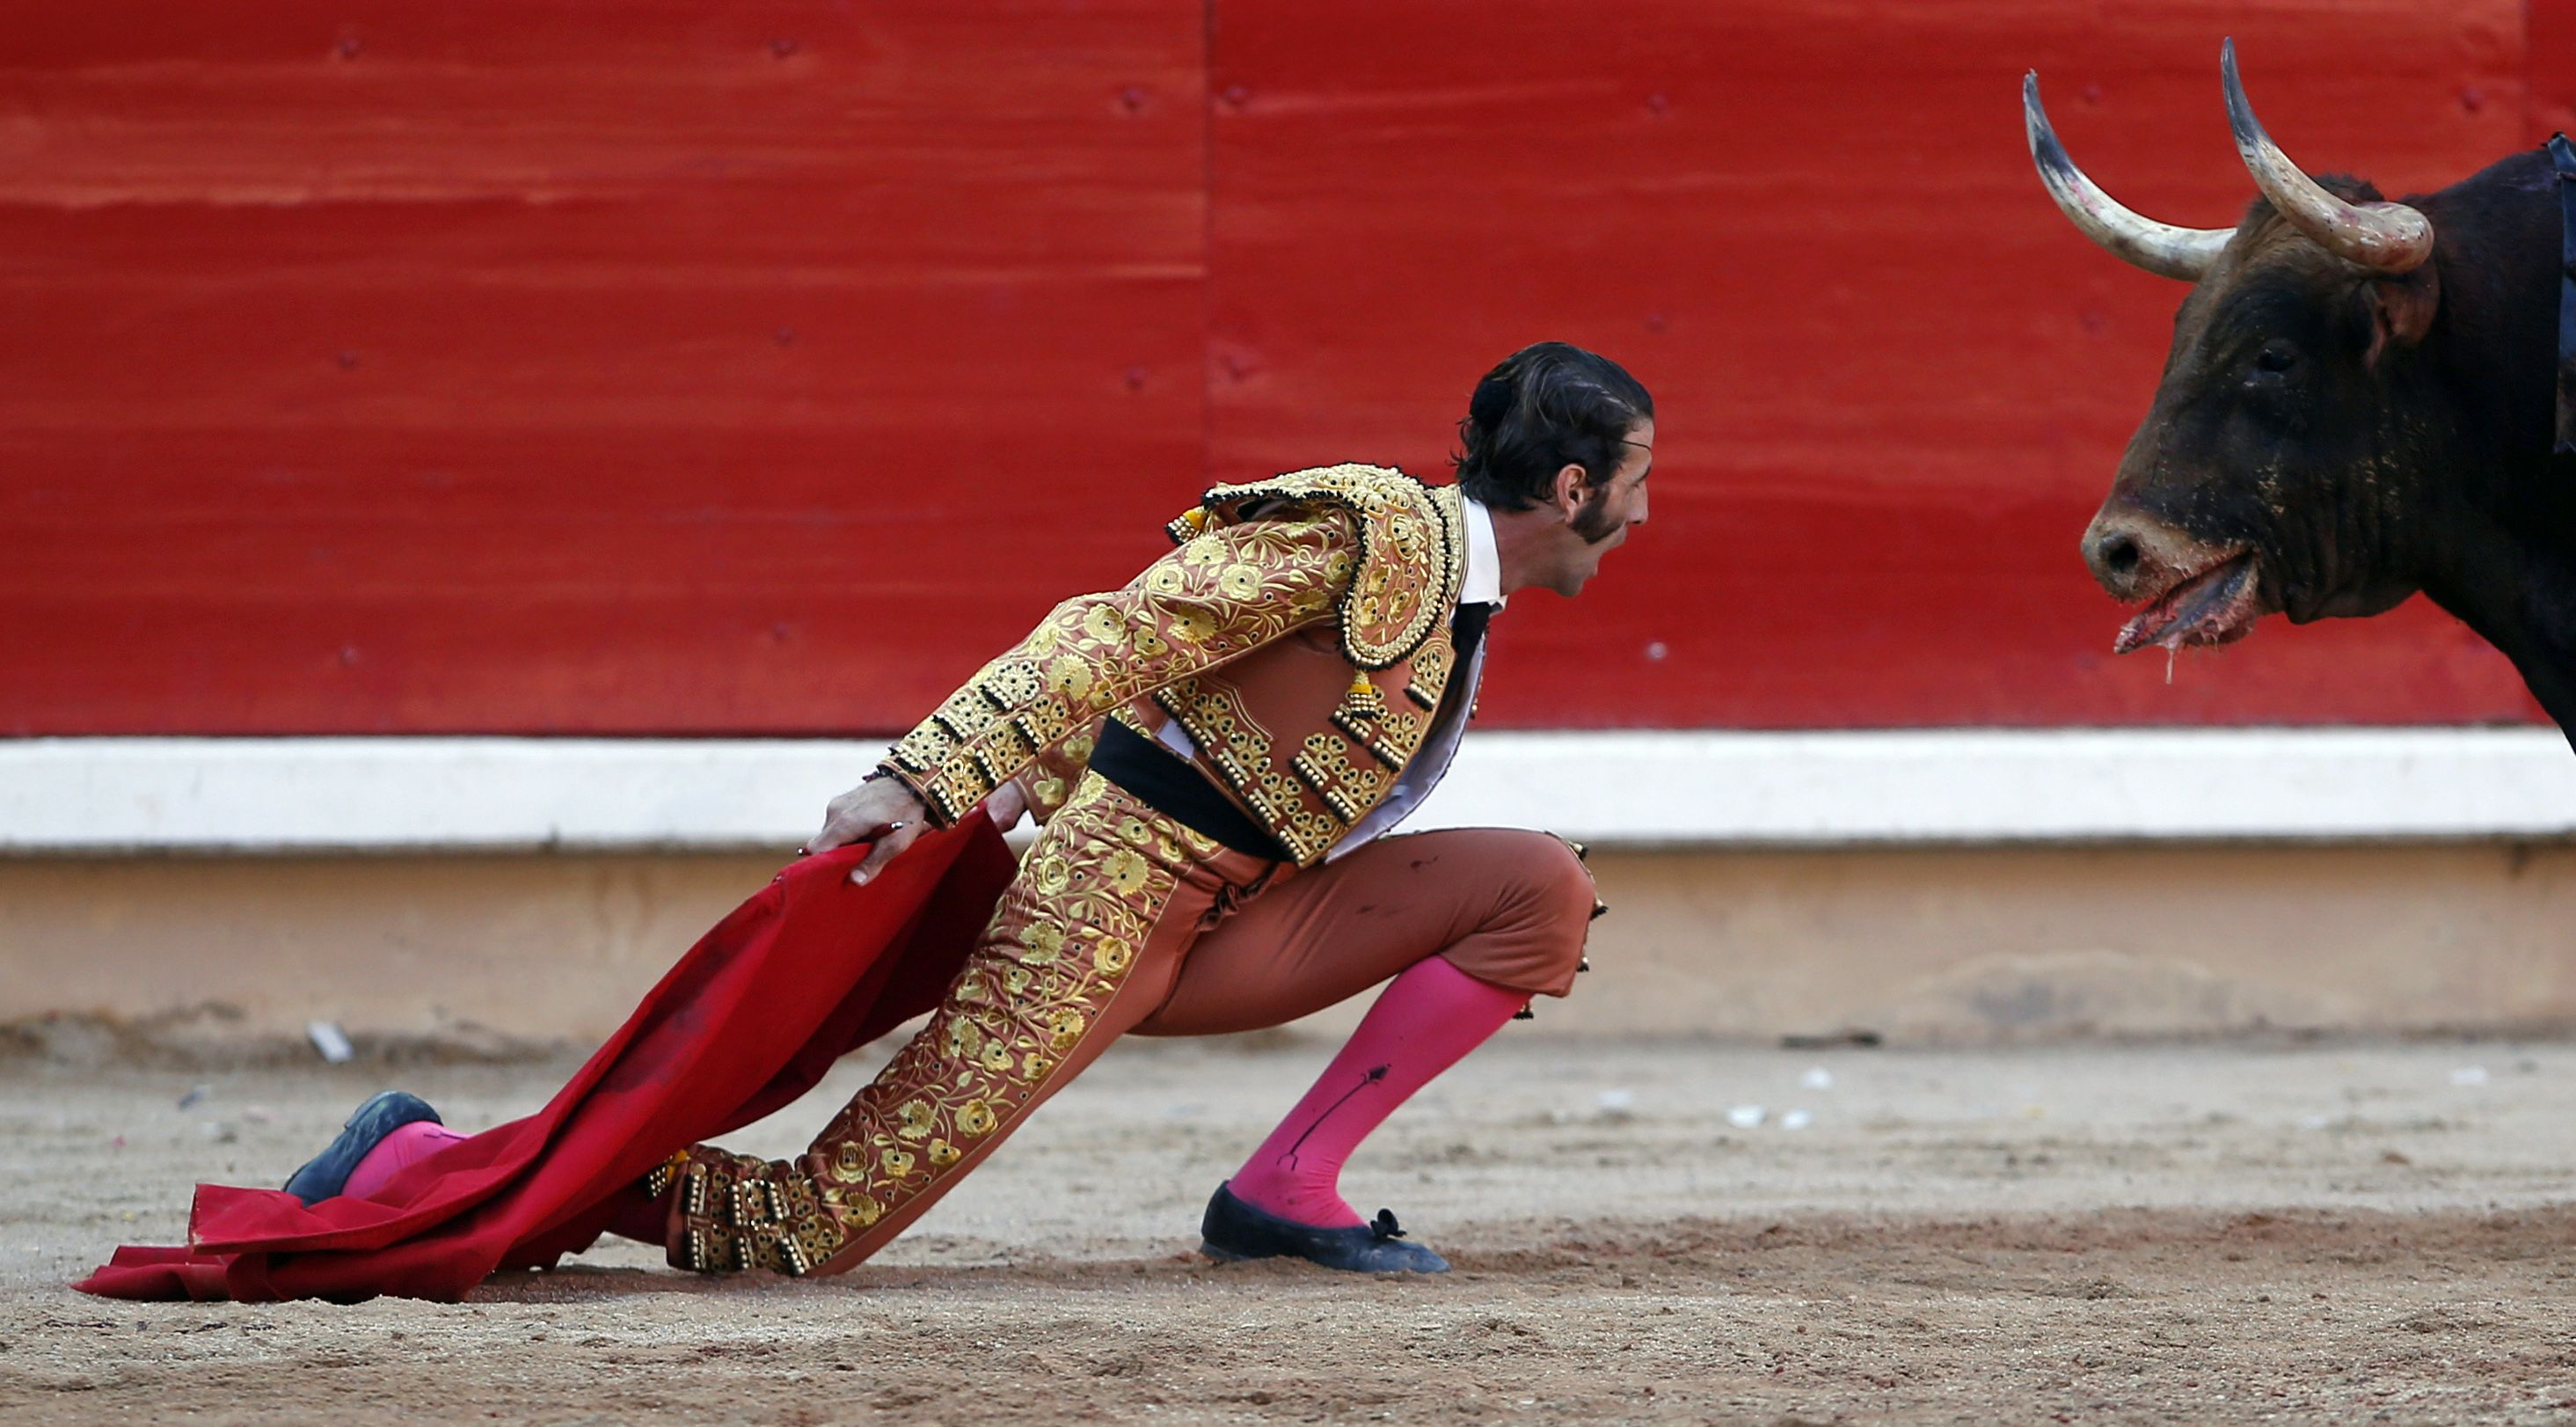 Spanish bullfighter Juan Jose Padilla kneels down in front of a bull during the last bullfight of the San Fermin festival in Pamplona July 14, 2012. Padilla lost an eye after getting gored last October during a bullfight in Zaragoza, northern Spain. He made a comeback five months afterwards.   REUTERS/Susana Vera (SPAIN - Tags: SOCIETY TPX IMAGES OF THE DAY)